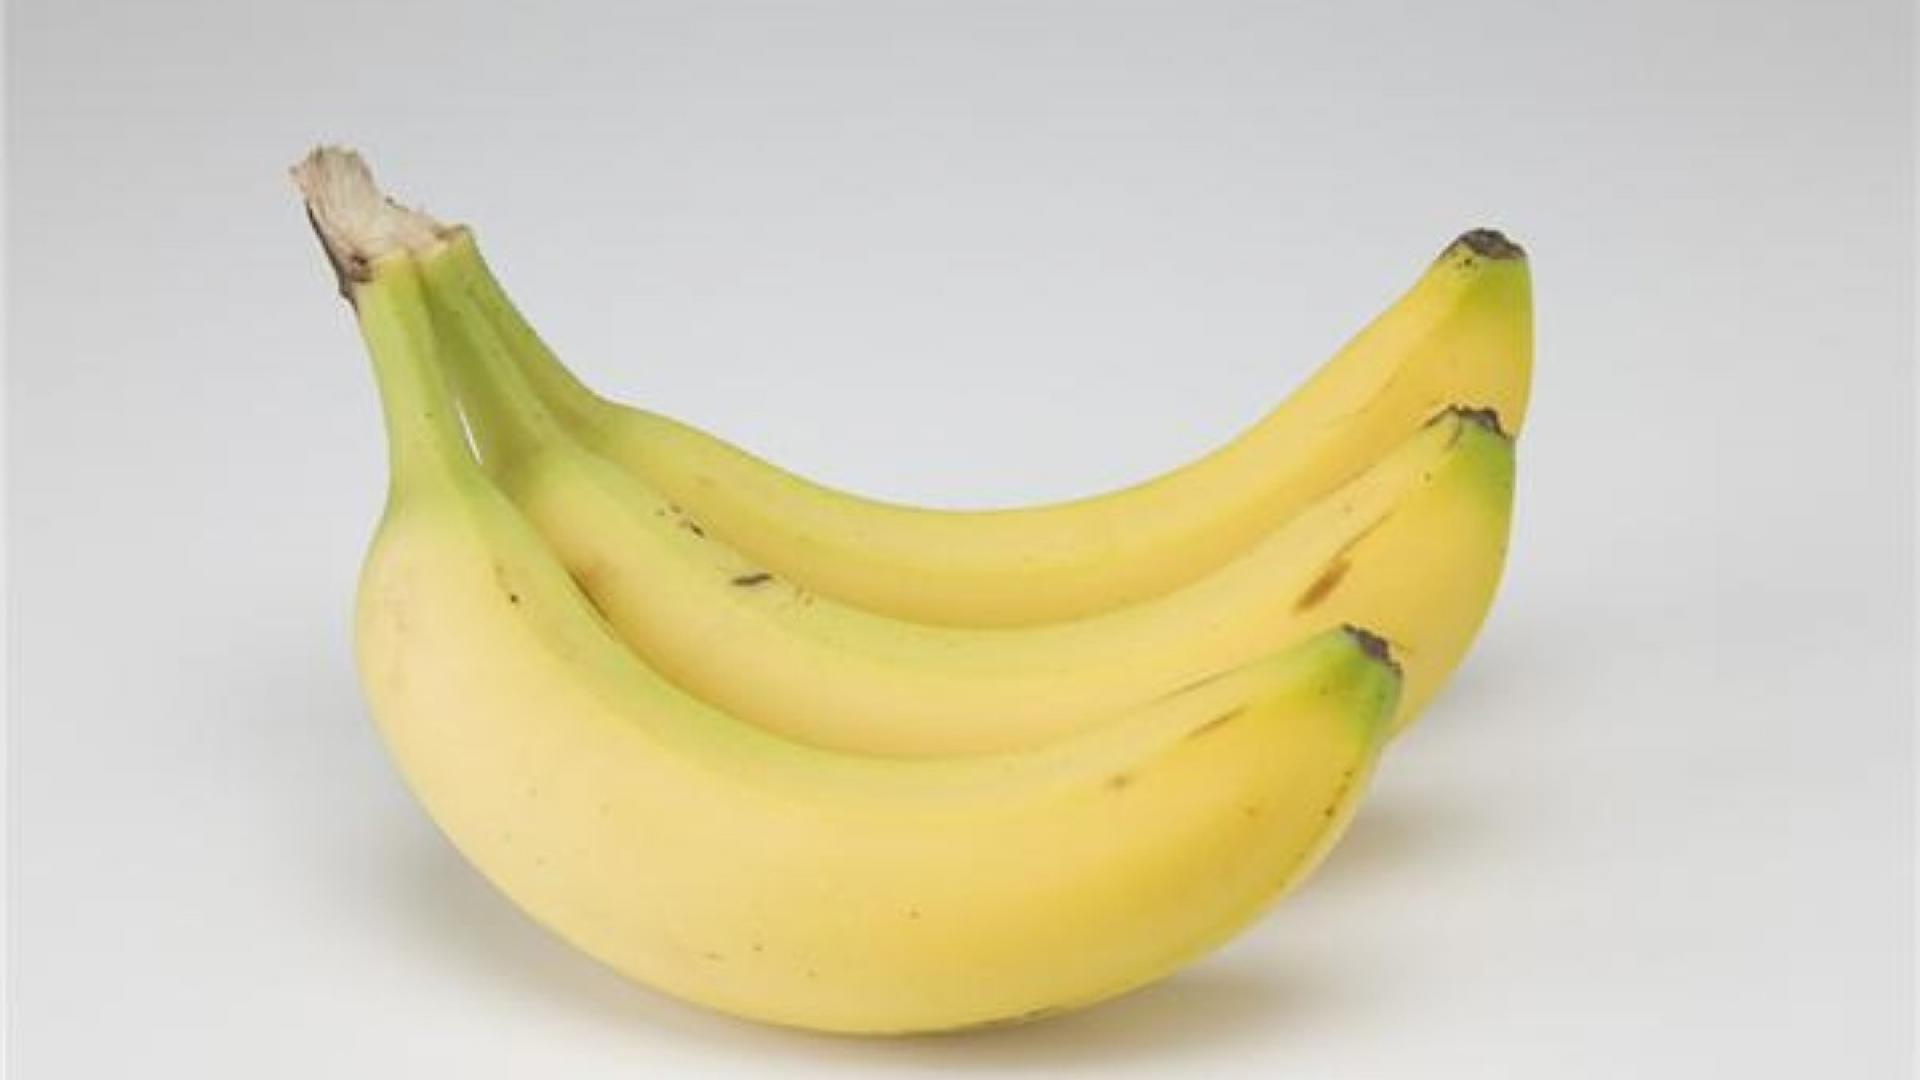 Eating more bananas and cutting down on salt can lower stroke chances